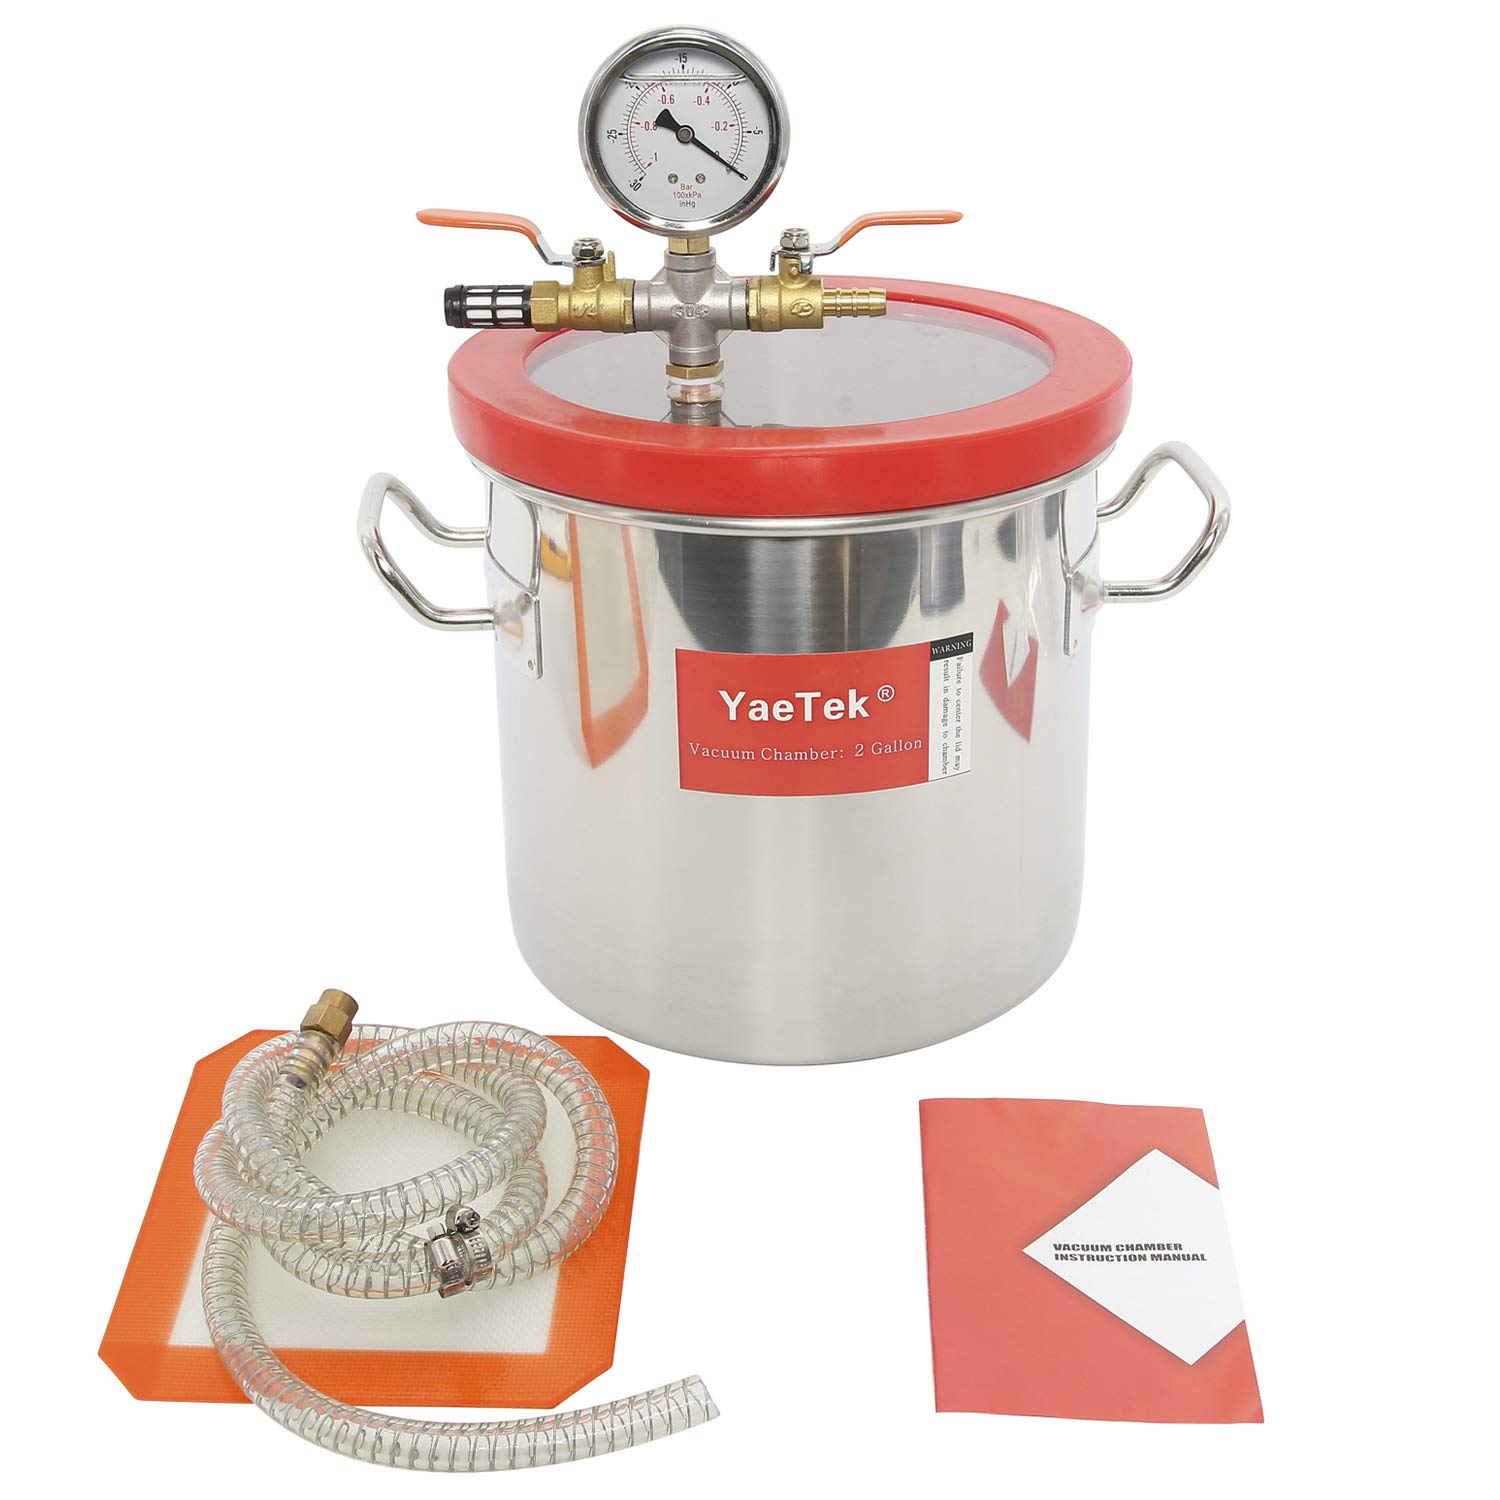 YAETEK 2 Gallon Stainless Steel Vacuum Chamber kit for Degass Urethanes Silicones Epoxies and Resins by YAETEK